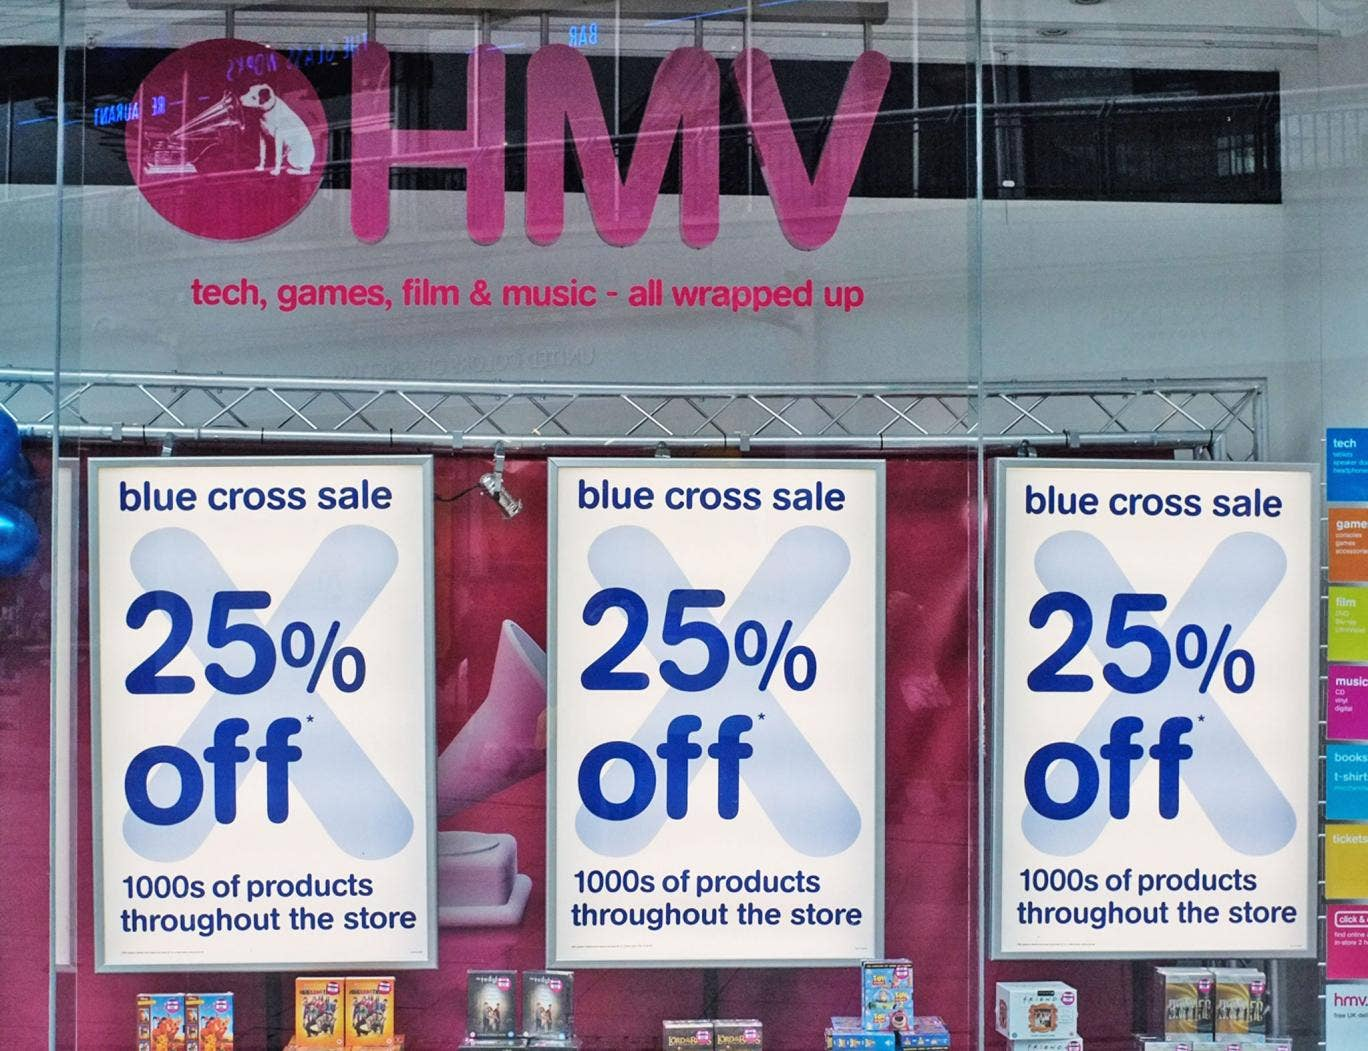 value chain hmv To buy music retail chain hmv's hong kong and singapore businesses   partner of aid partners, without disclosing the value of the buy-out.